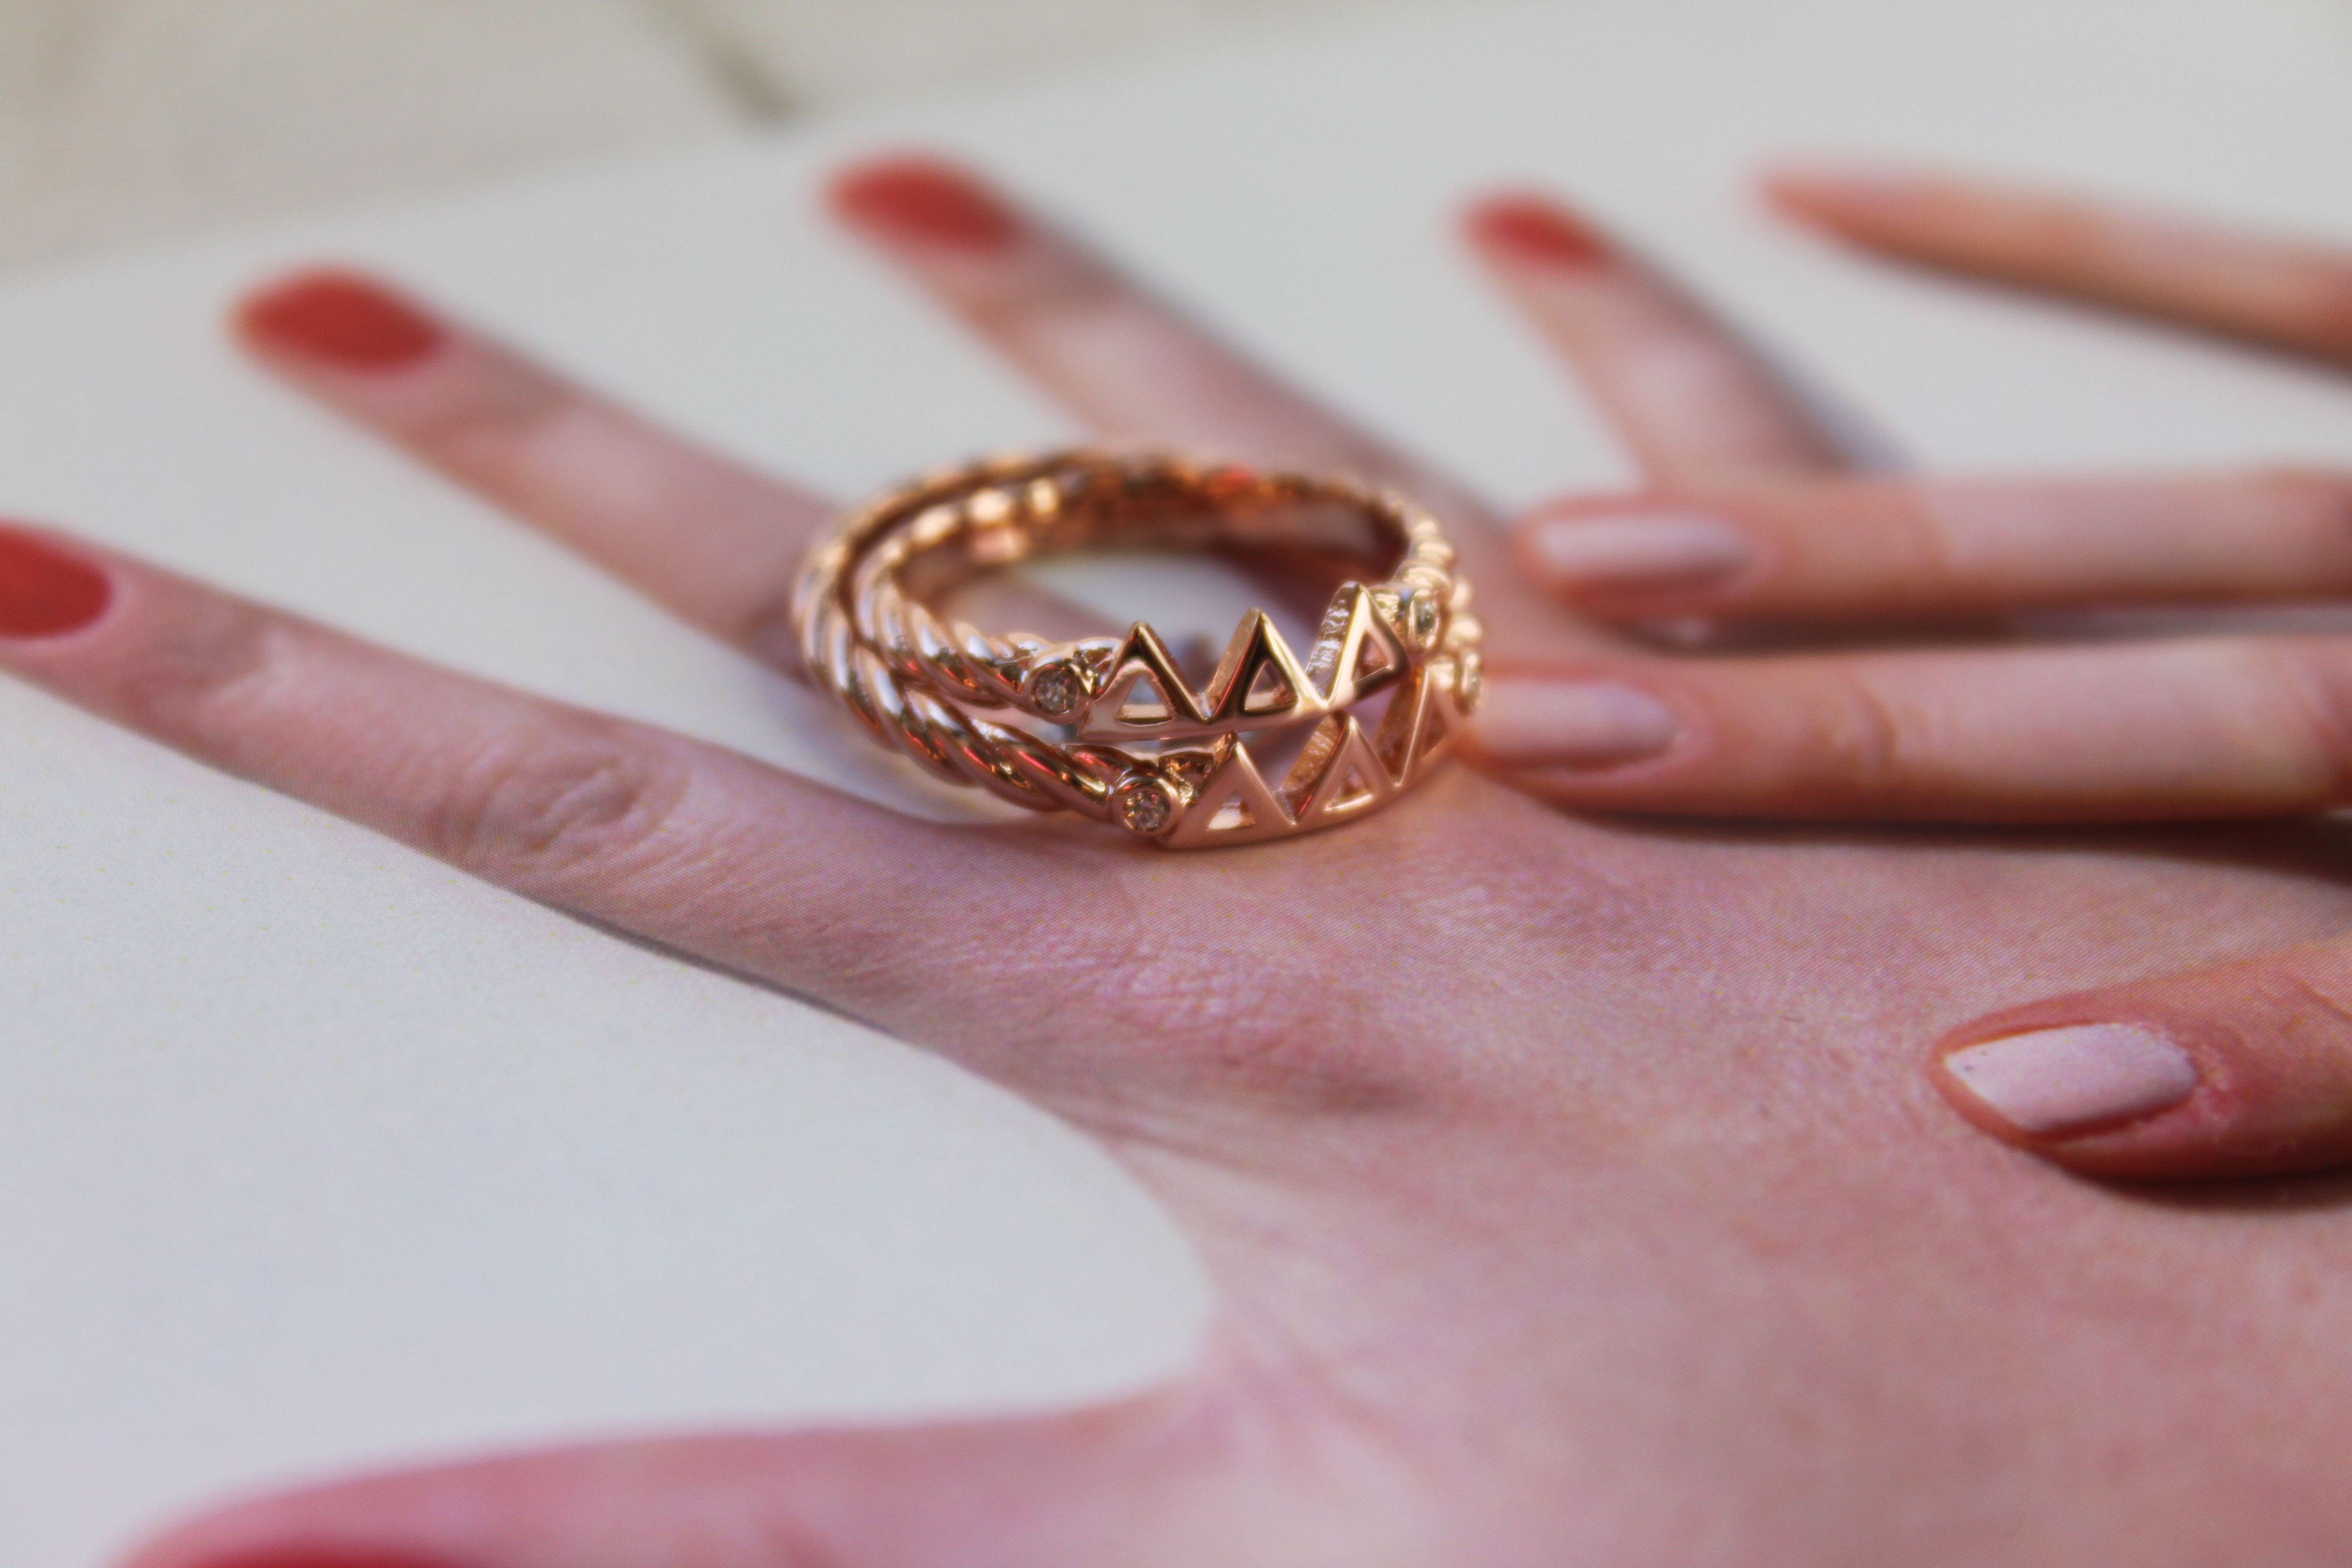 Navany.com ∆∆∆ ring in rose gold ($50 if under 30 order; $40 if 30 or more)